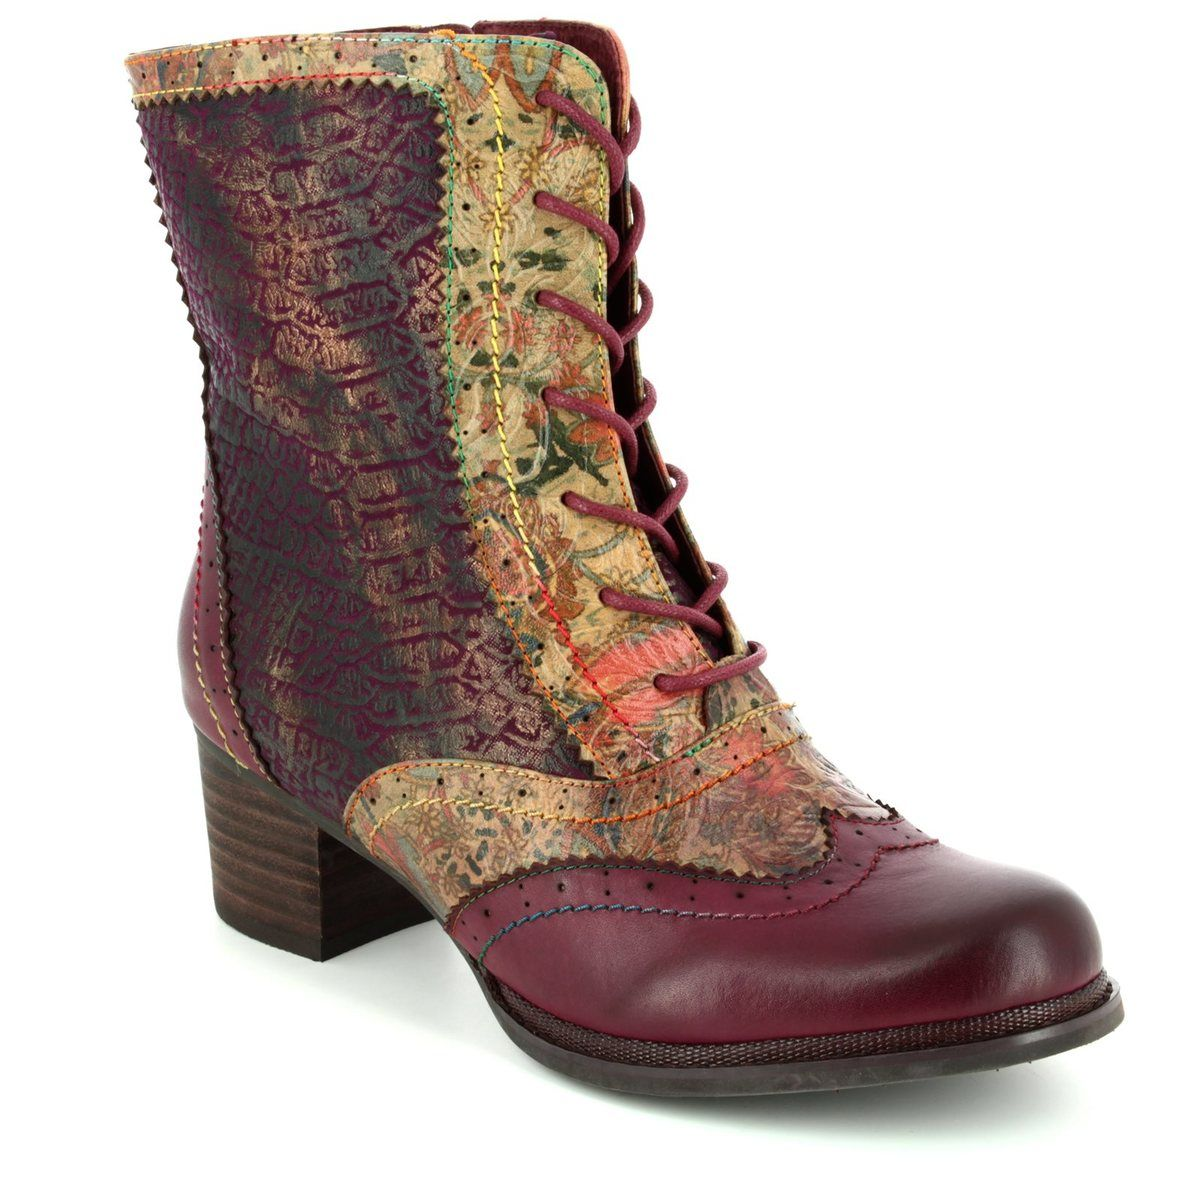 300480 alexia 15 | Womens knee high boots, Jeans and boots